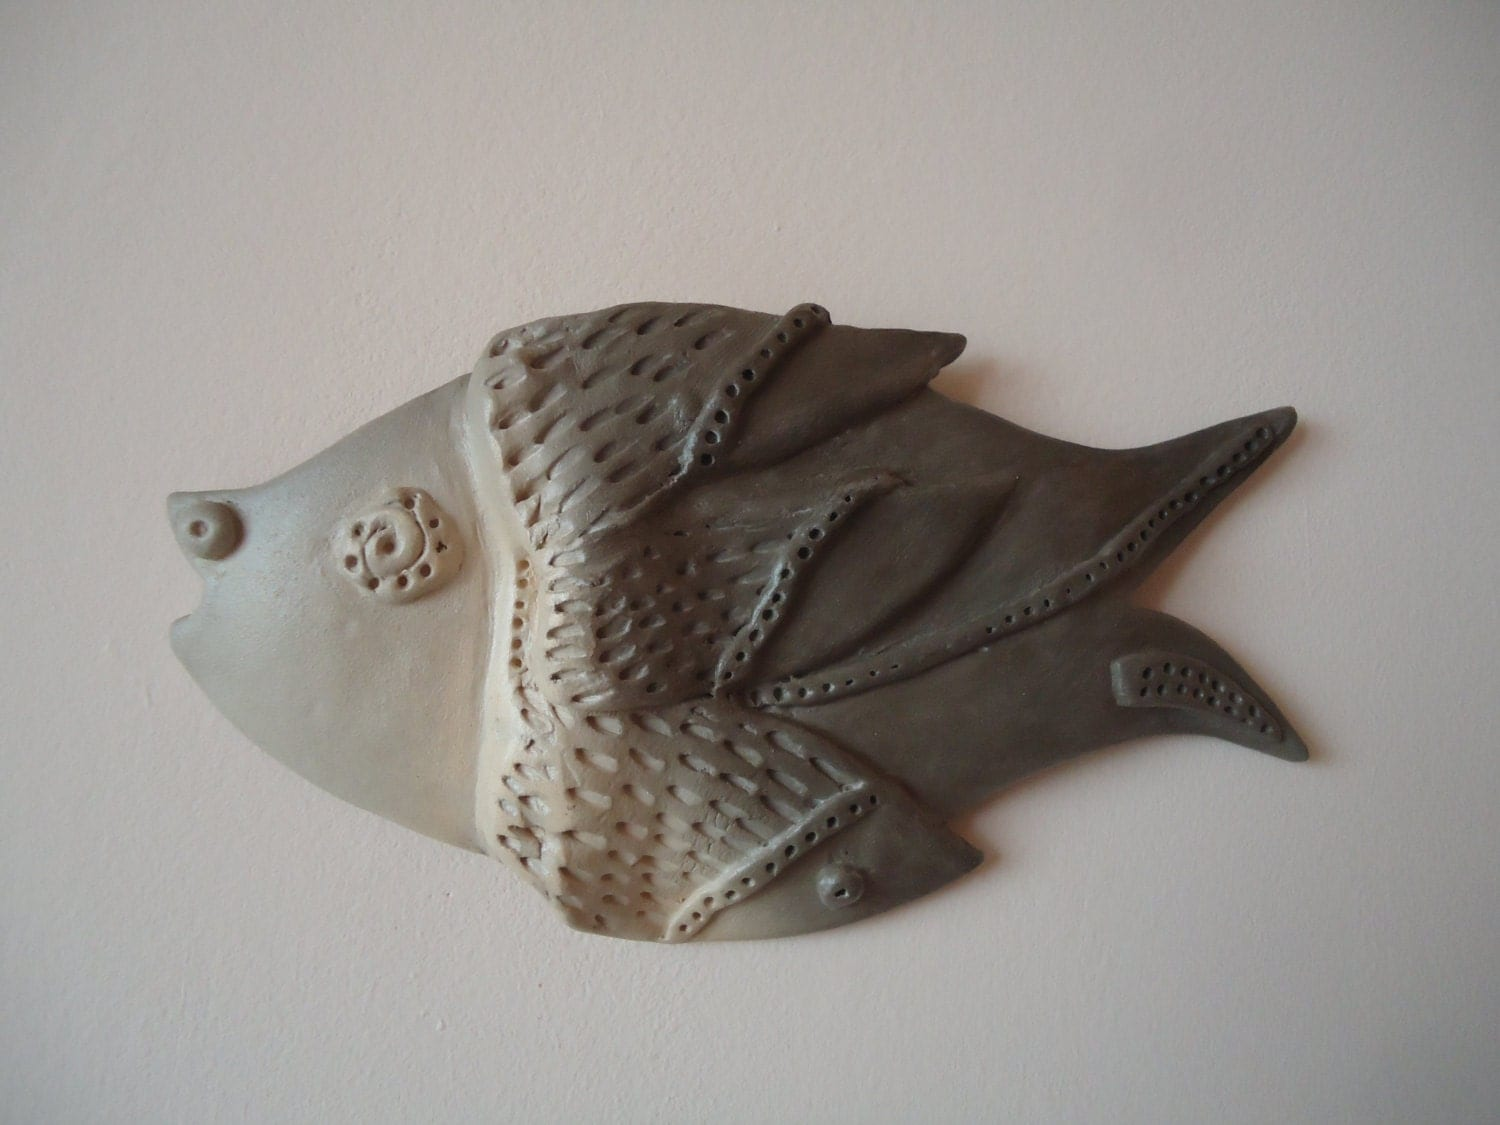 Wall Decor With Fish : Ceramic fish wall art decor cute by